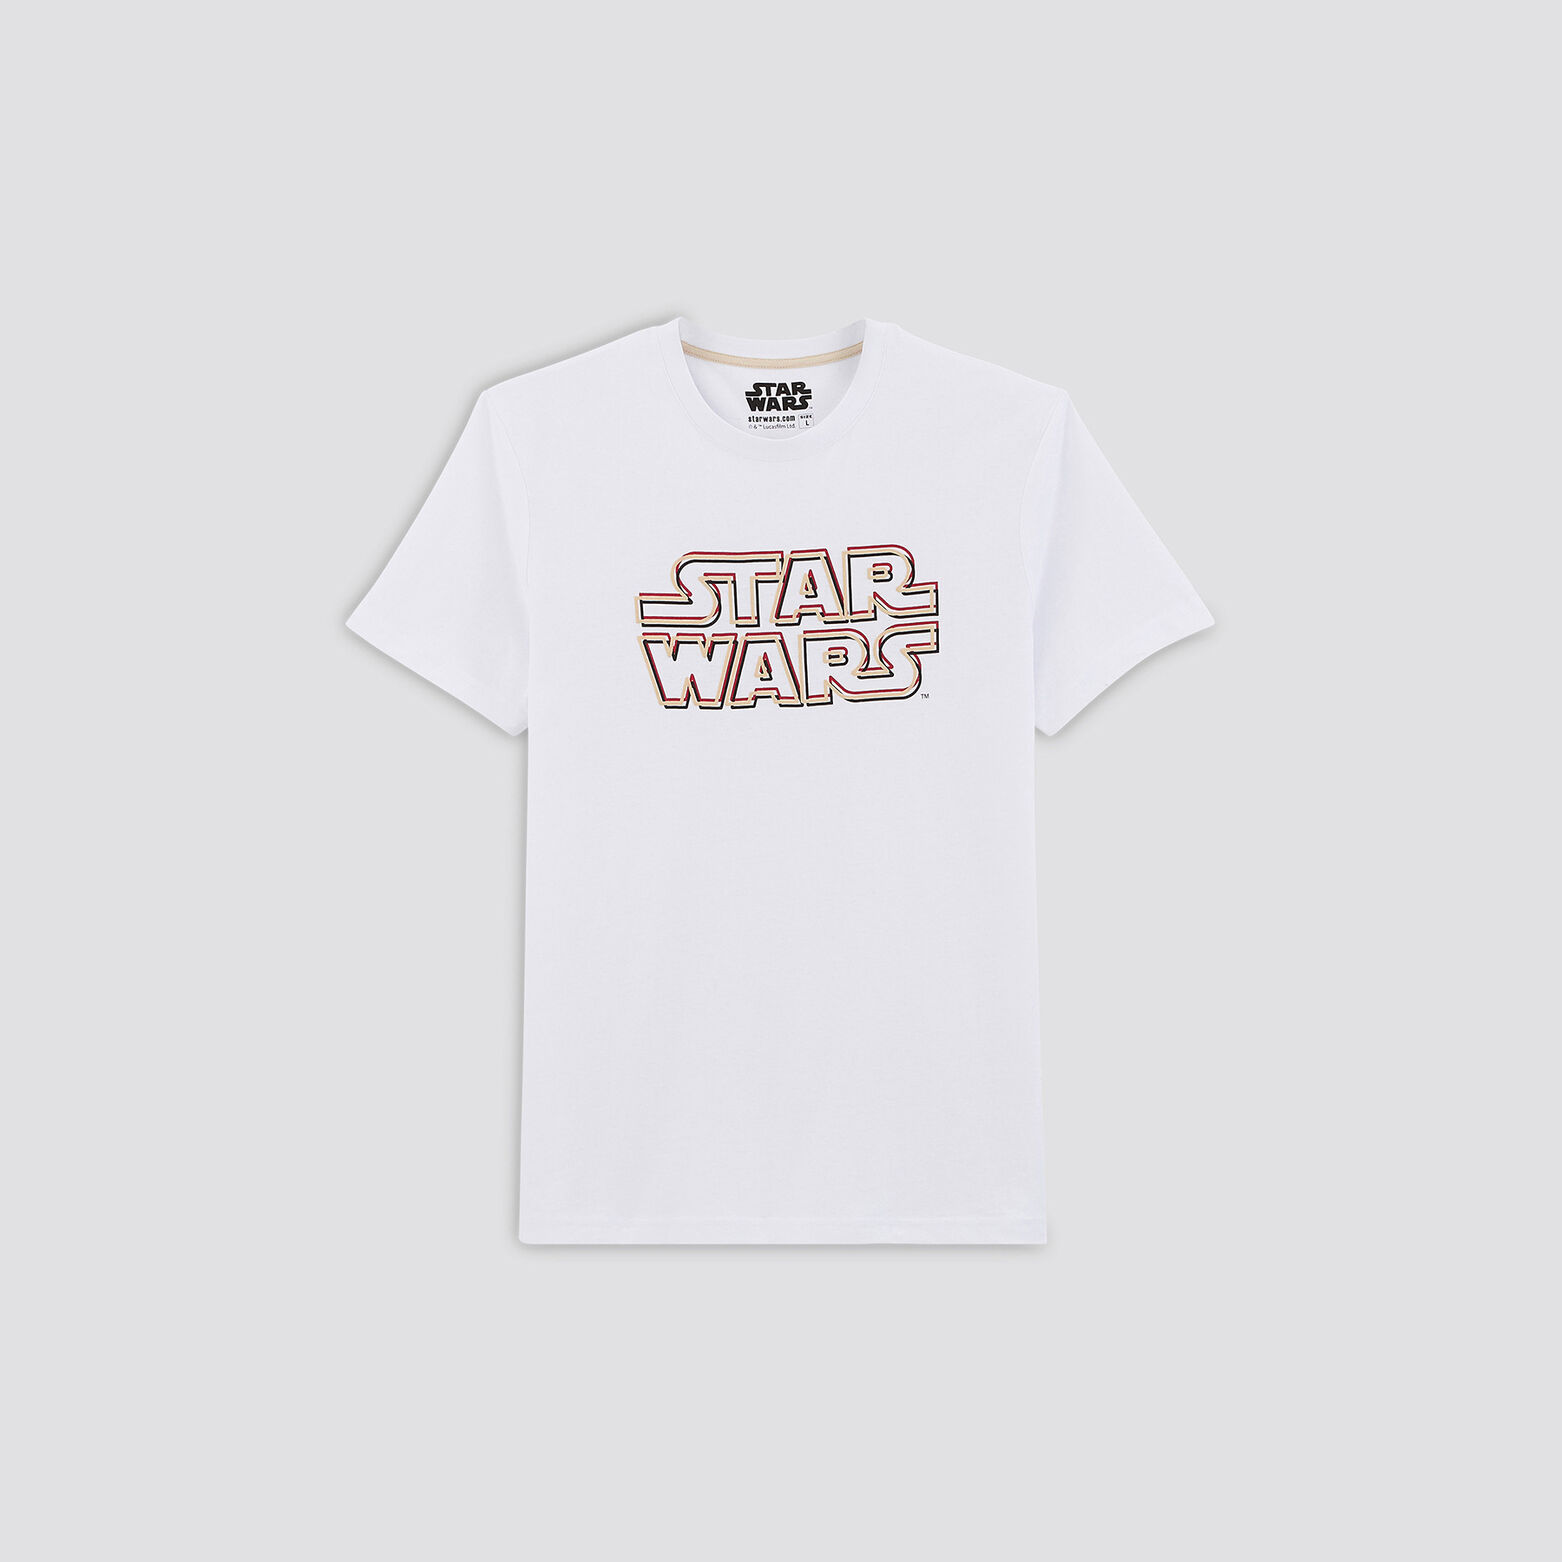 Tee shirt Star Wars coton issue de l'agriculture b